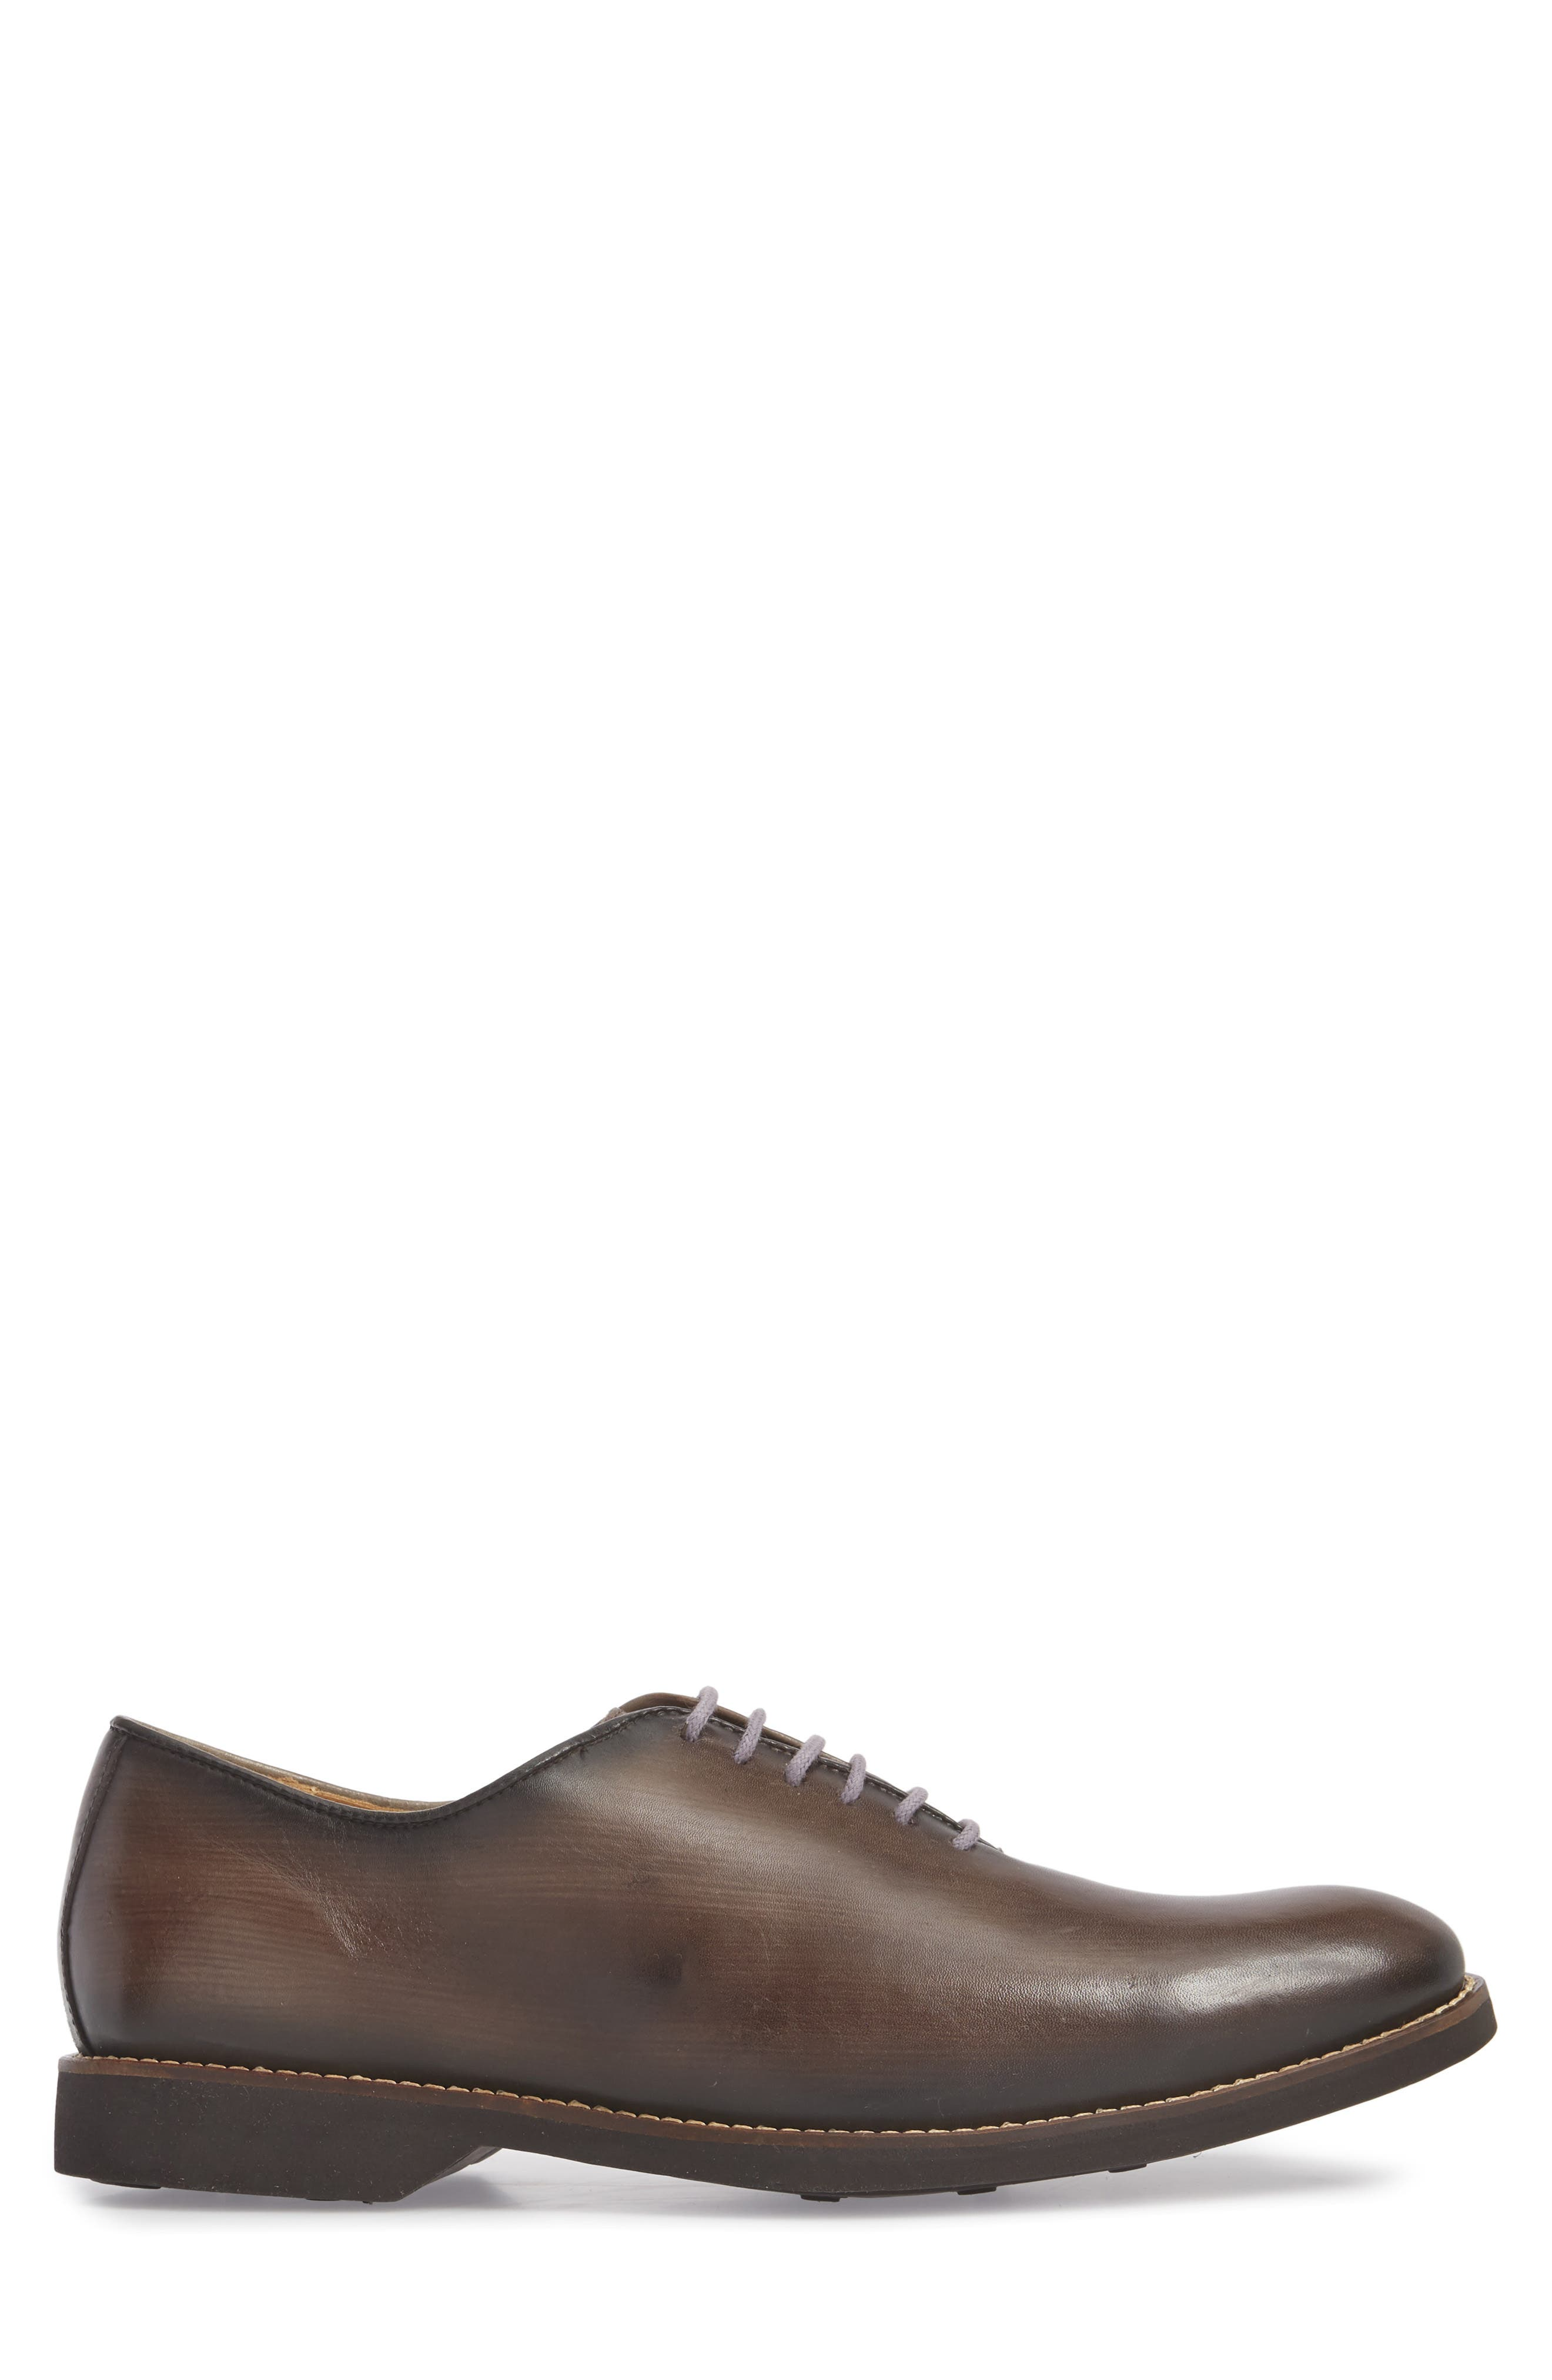 Sao Paulo II Whole Cut Shoe,                             Alternate thumbnail 3, color,                             TOUCH GREY BRUSHED LEATHER